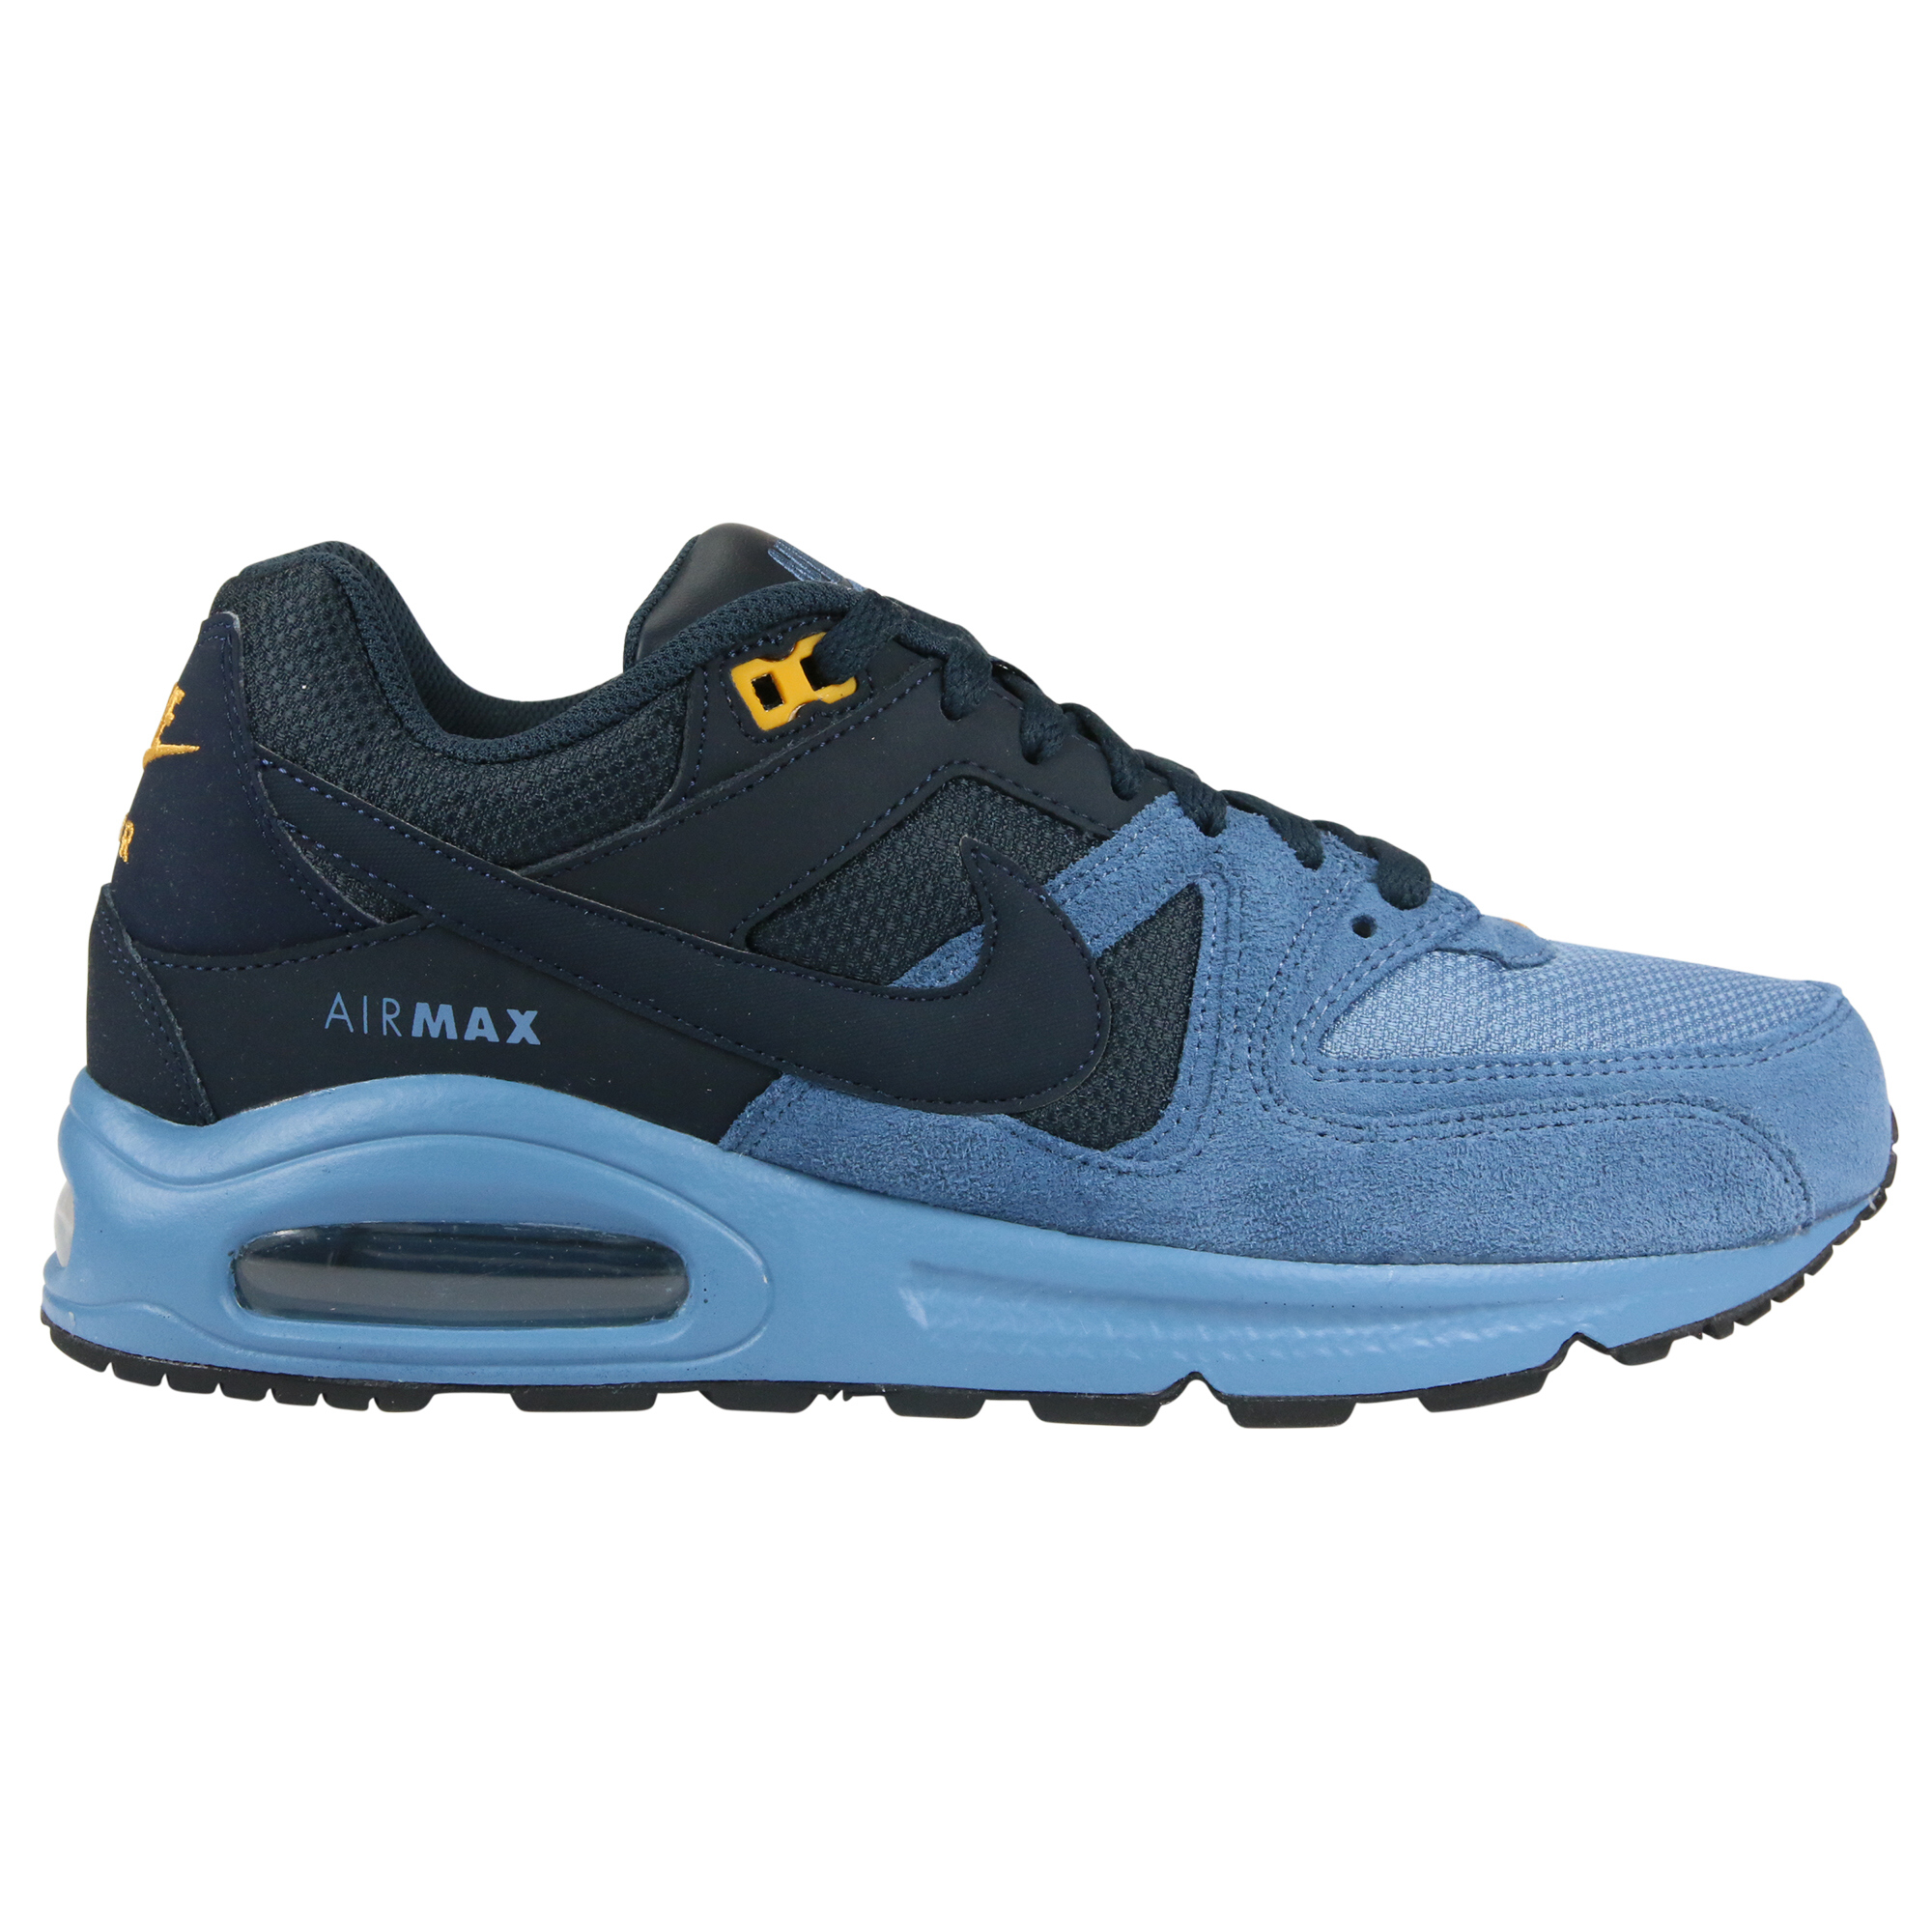 nike air max command schuhe turnschuhe sneaker herren ebay. Black Bedroom Furniture Sets. Home Design Ideas